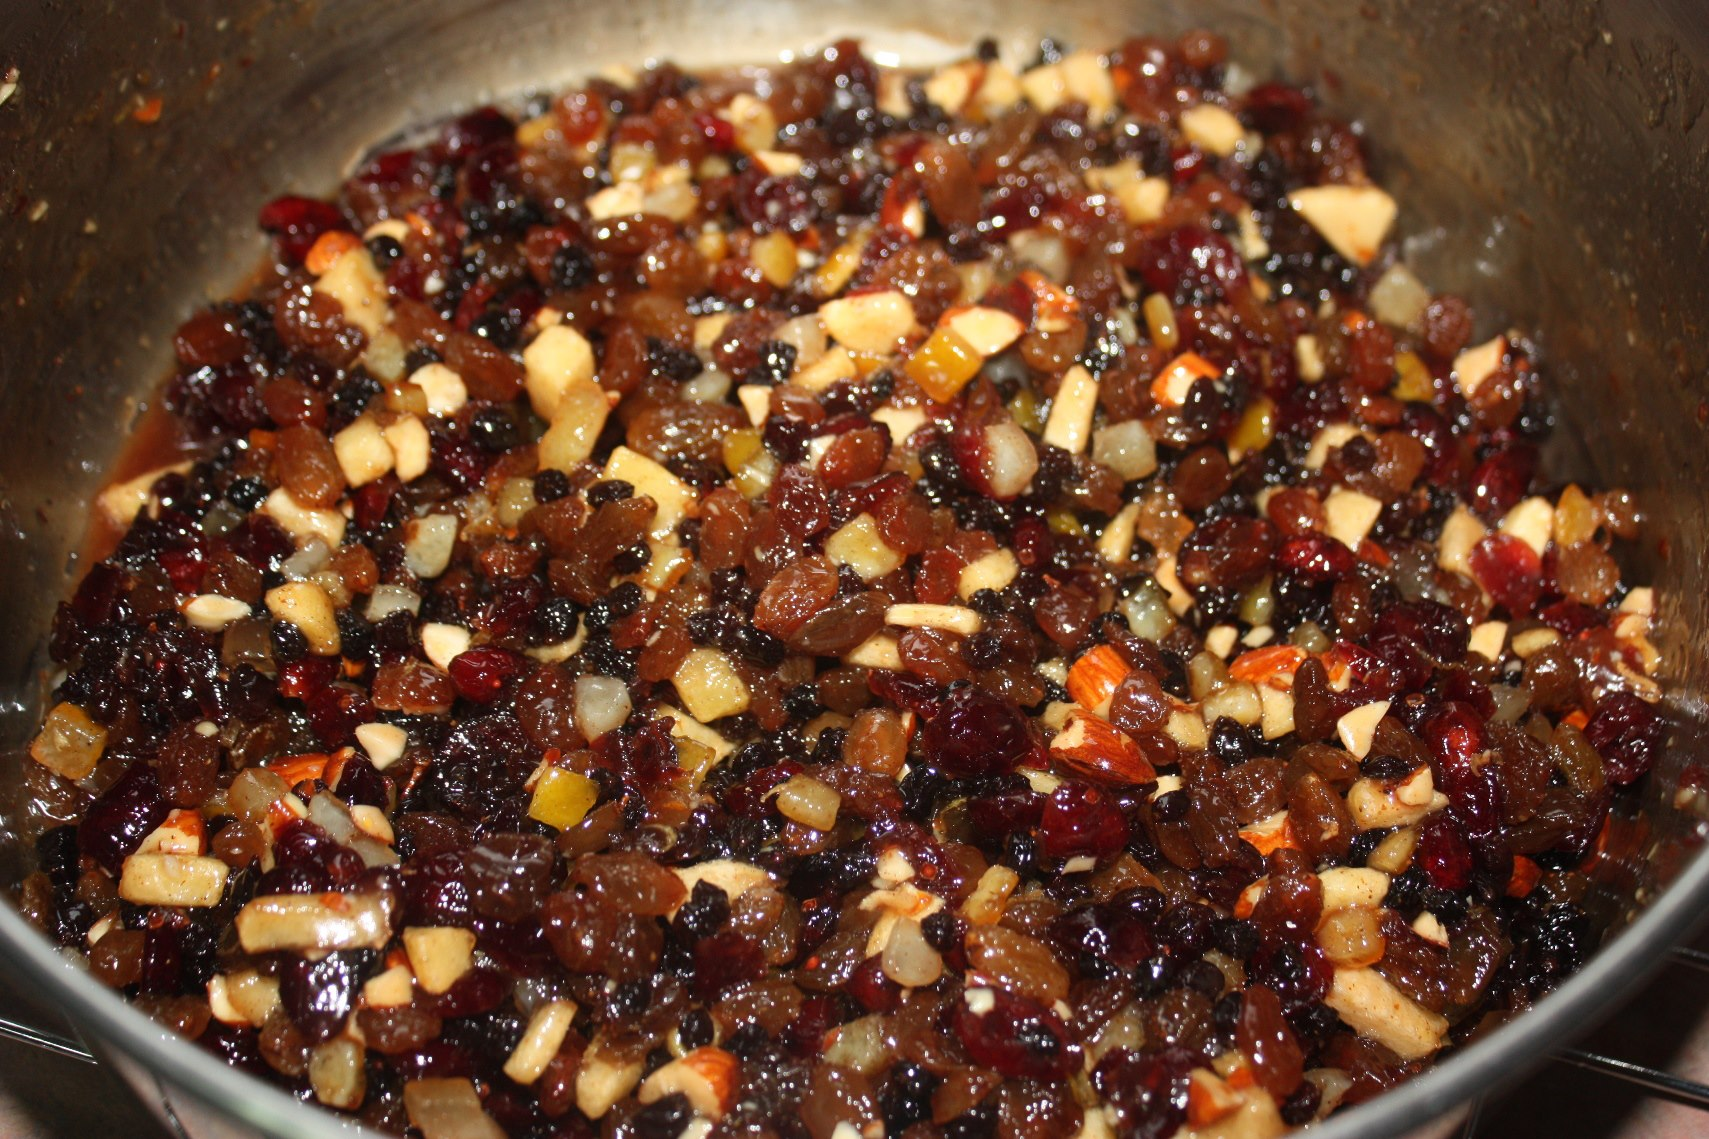 Homemade mincemeat simmering on a stovetop